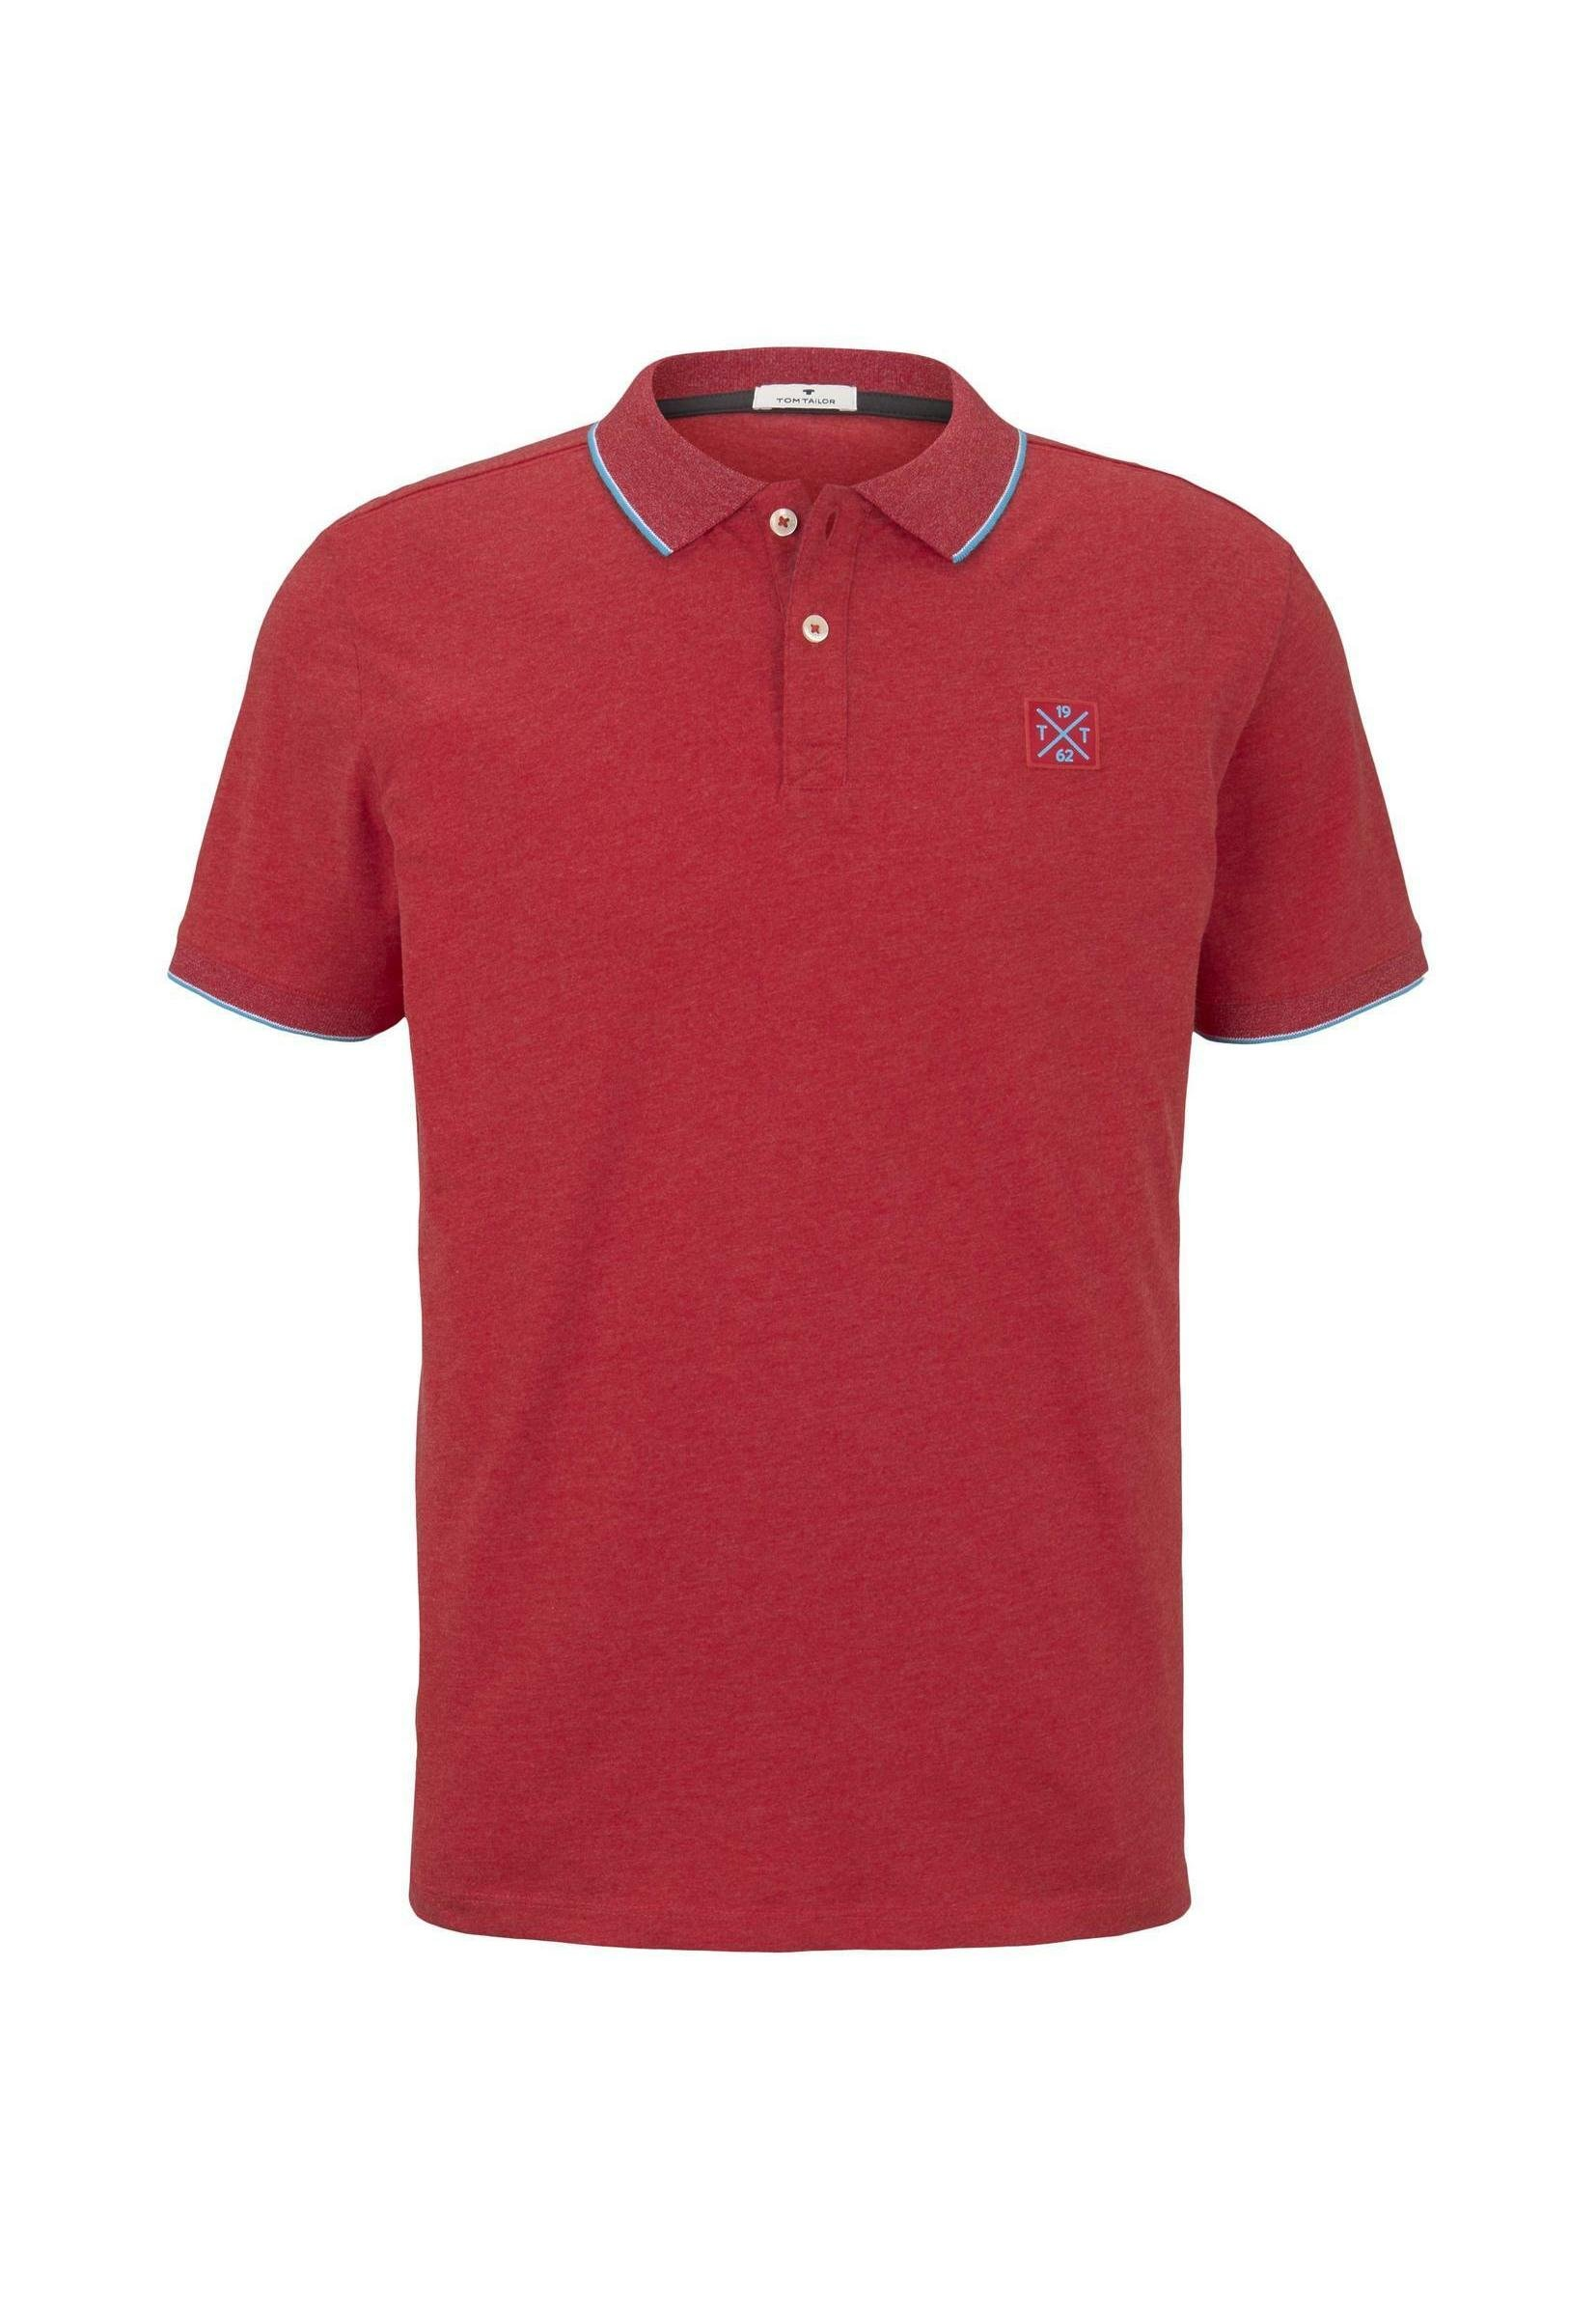 Tom Tailor With Tipping - Poloshirt Royal Blue/white Melange